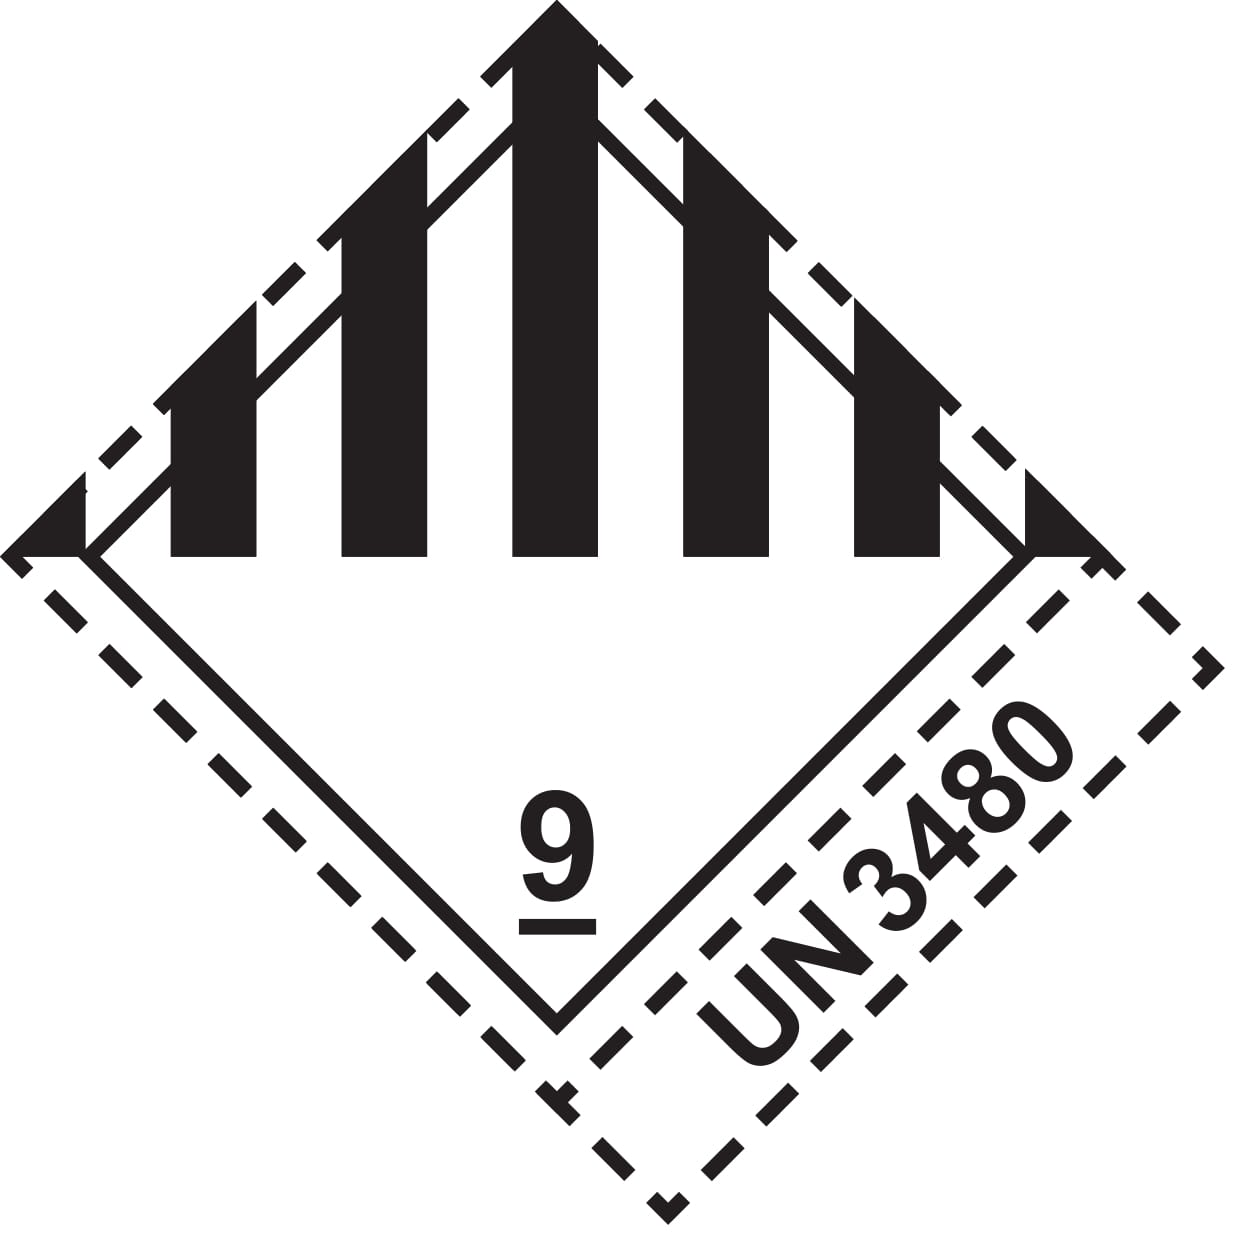 dangerous goods label-kl9-3480-1